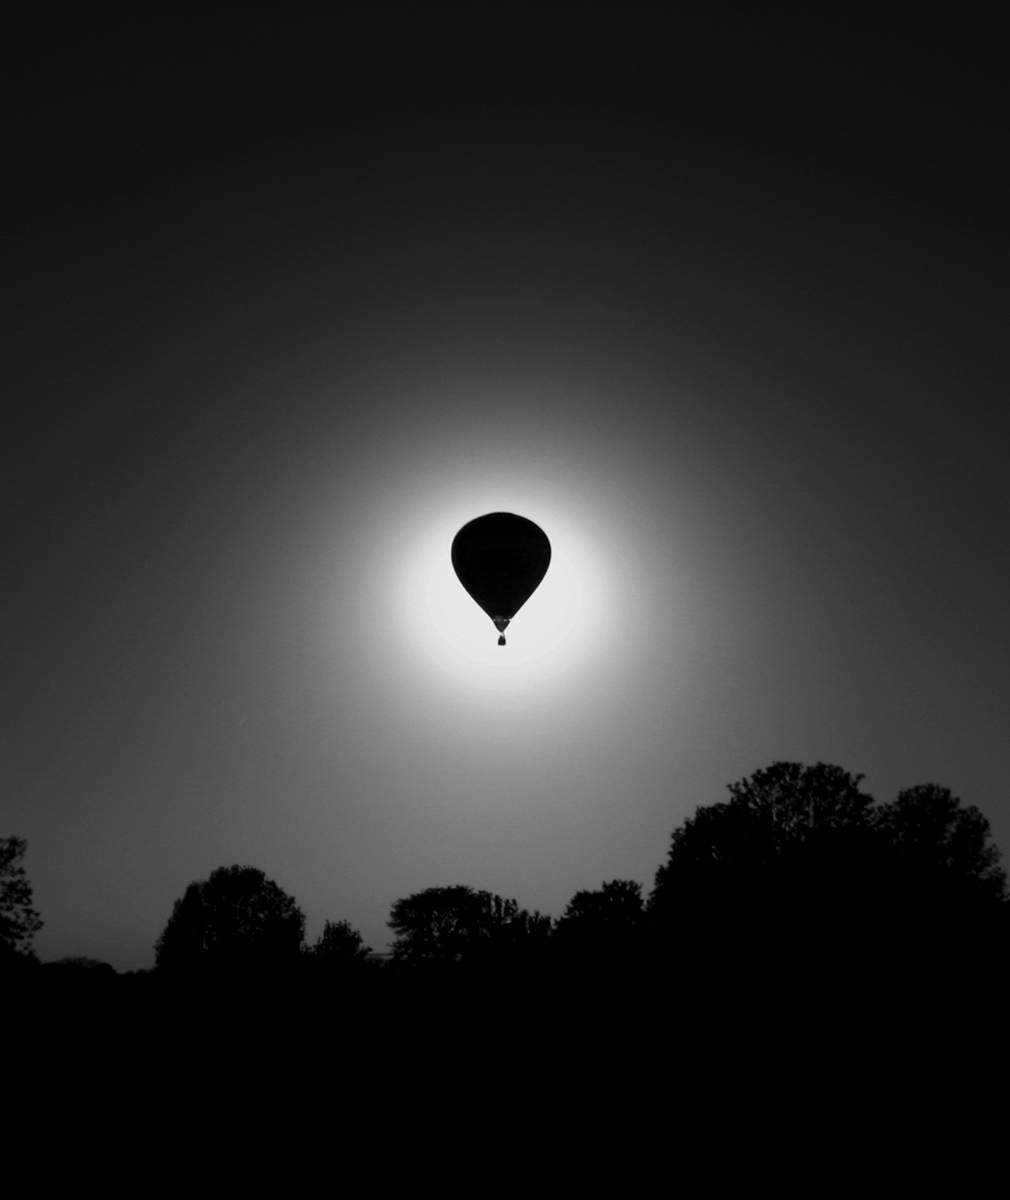 balloon-at-night2